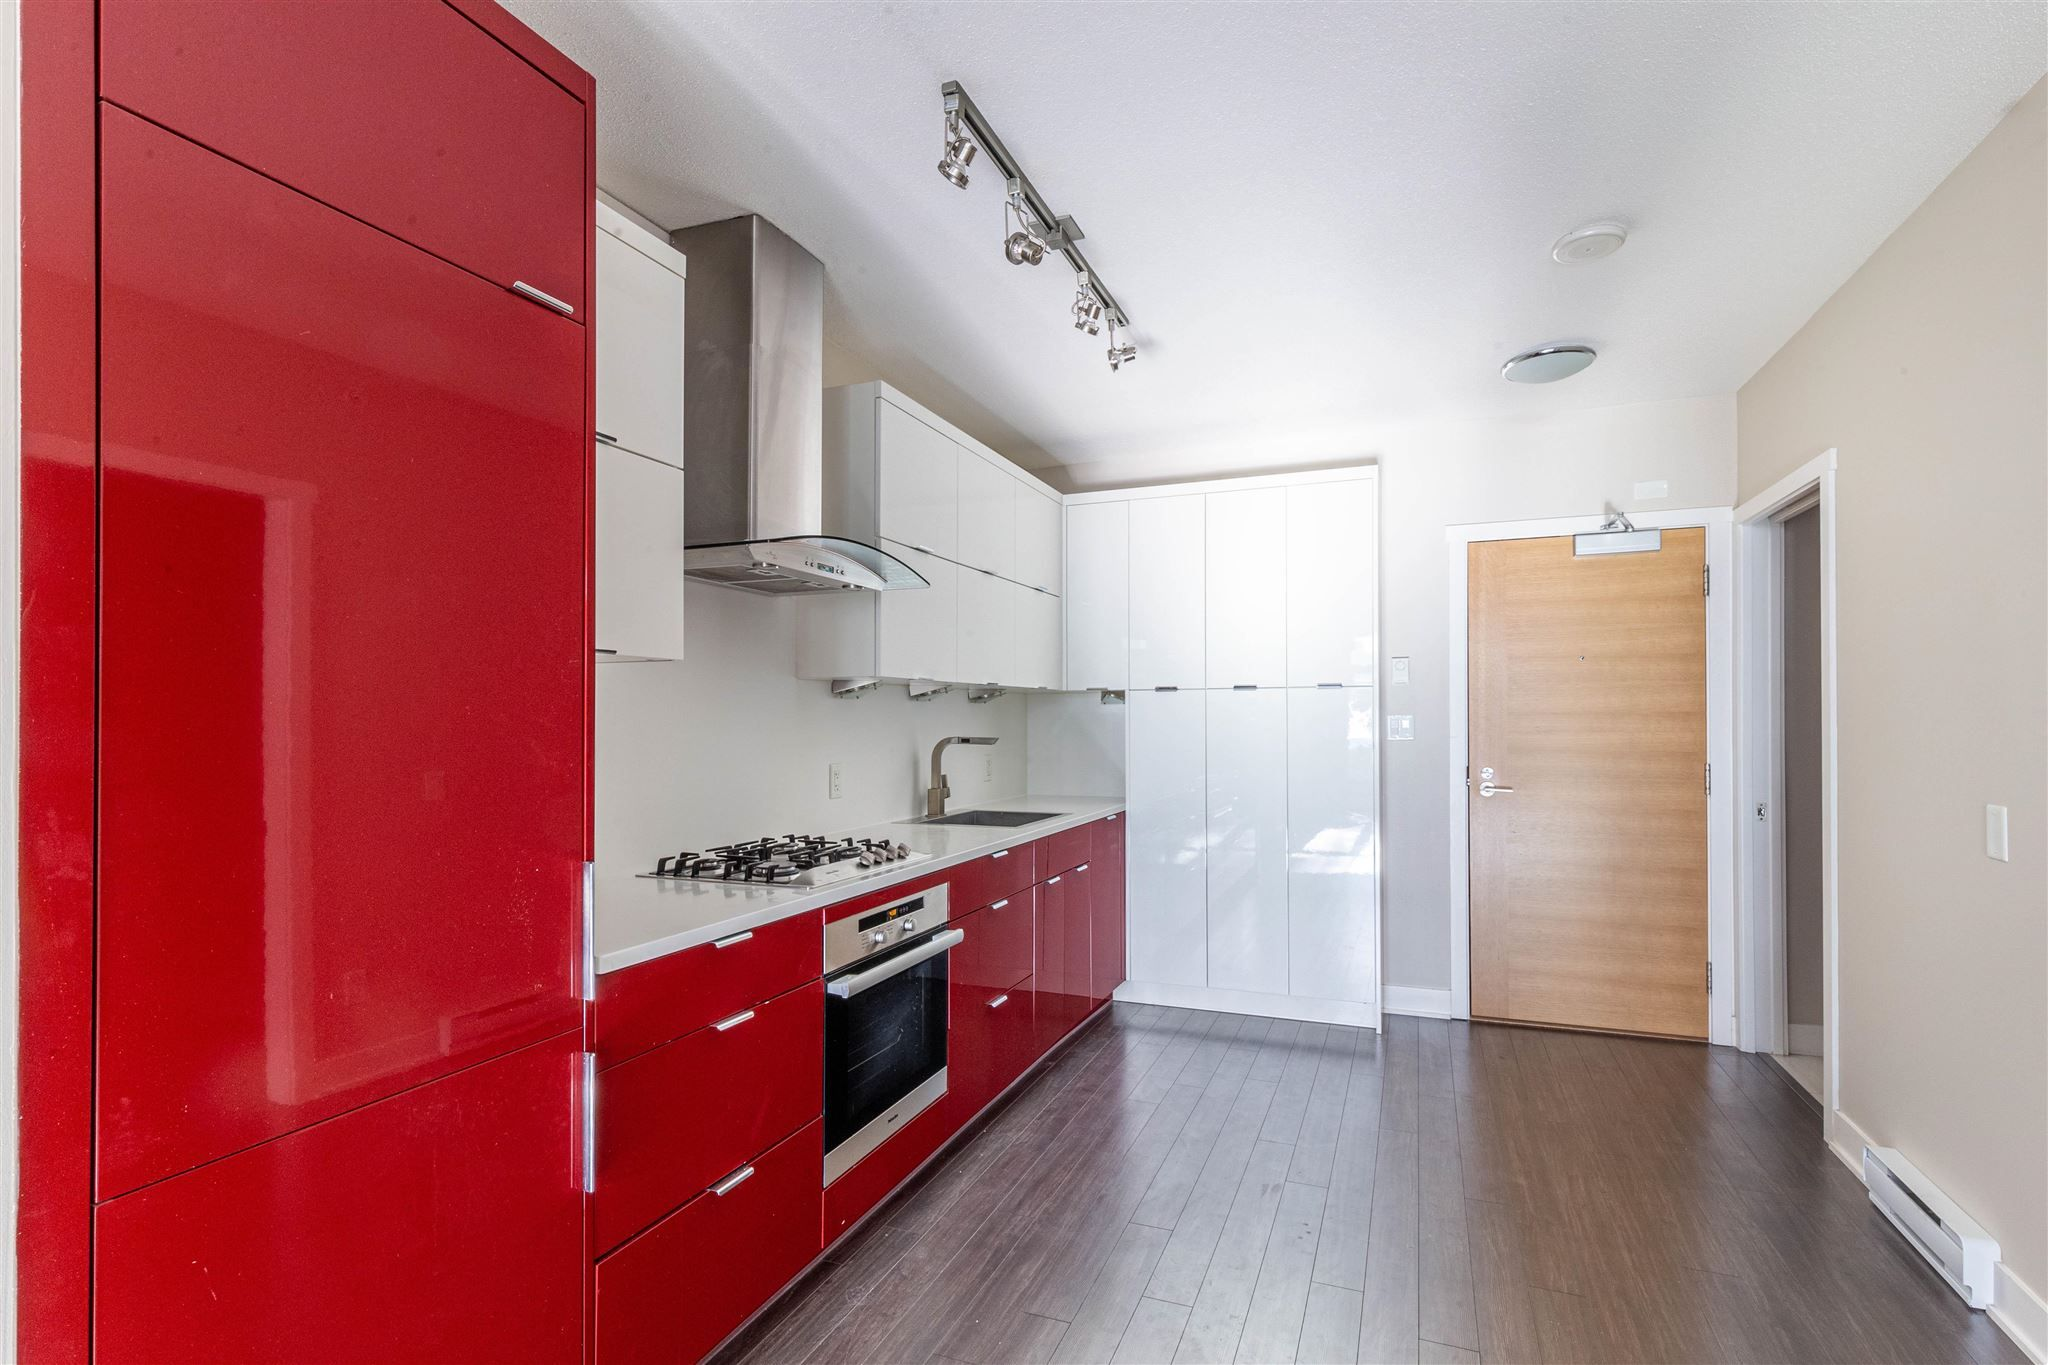 """Photo 15: Photos: 235 1777 W 7TH Avenue in Vancouver: Fairview VW Condo for sale in """"KITS 360"""" (Vancouver West)  : MLS®# R2607032"""